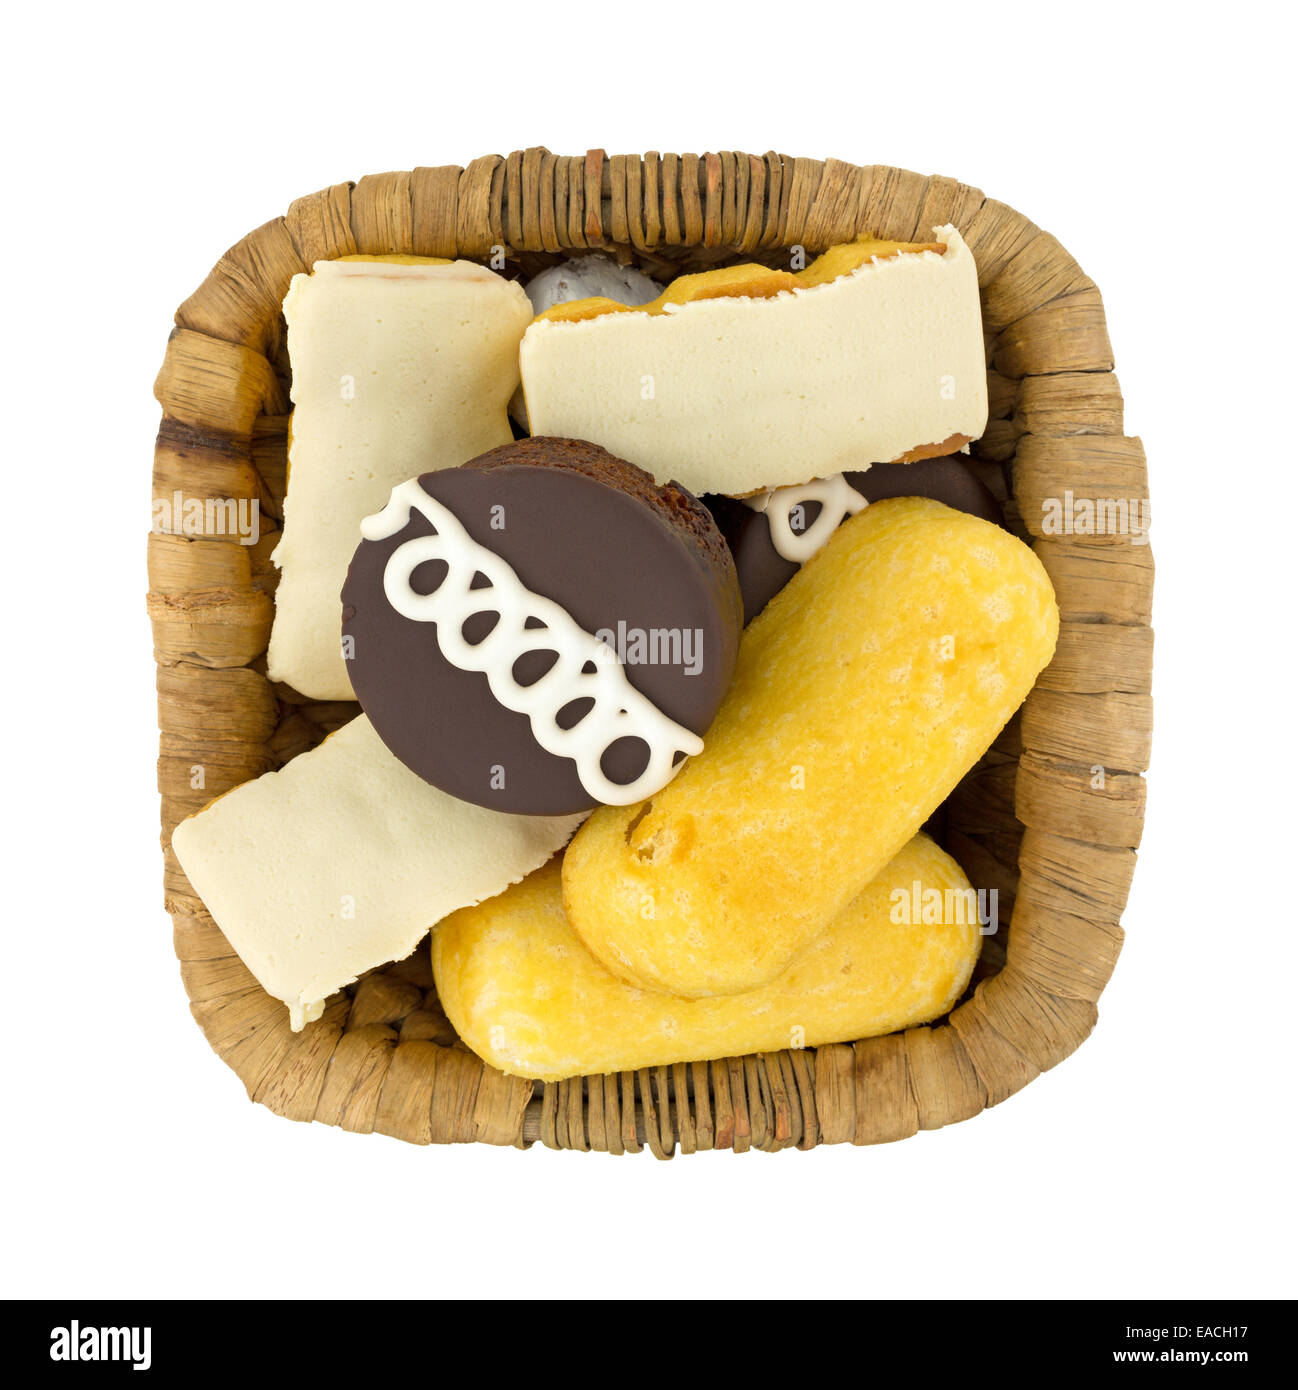 Top view of junk food including powdered donuts, cream filled cakes, chocolate iced cakes and iced covered cakes Stock Photo